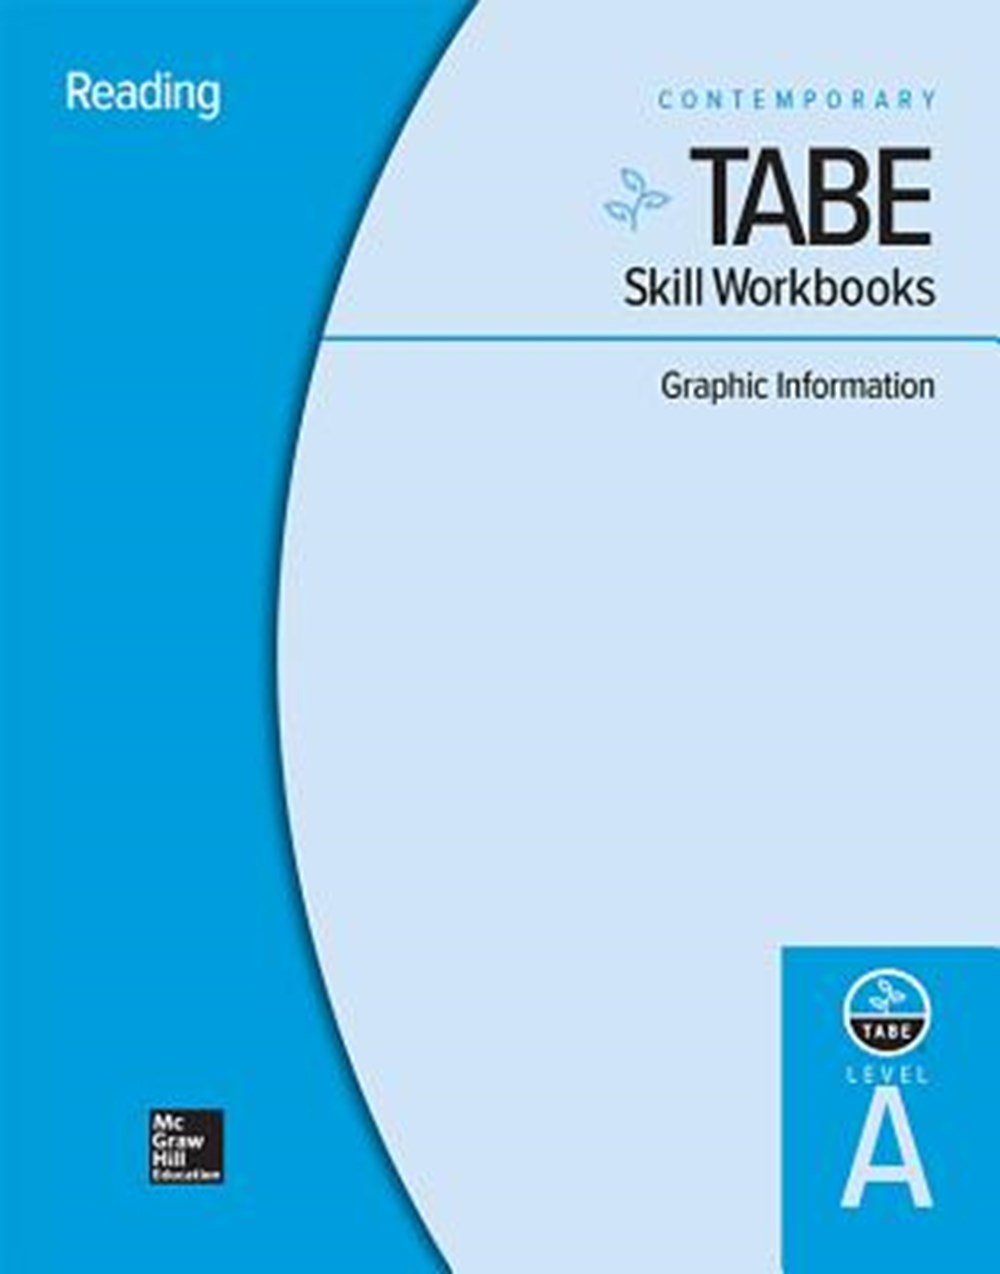 Tabe Skill Workbooks Level A Graphic Information - 10 Pack